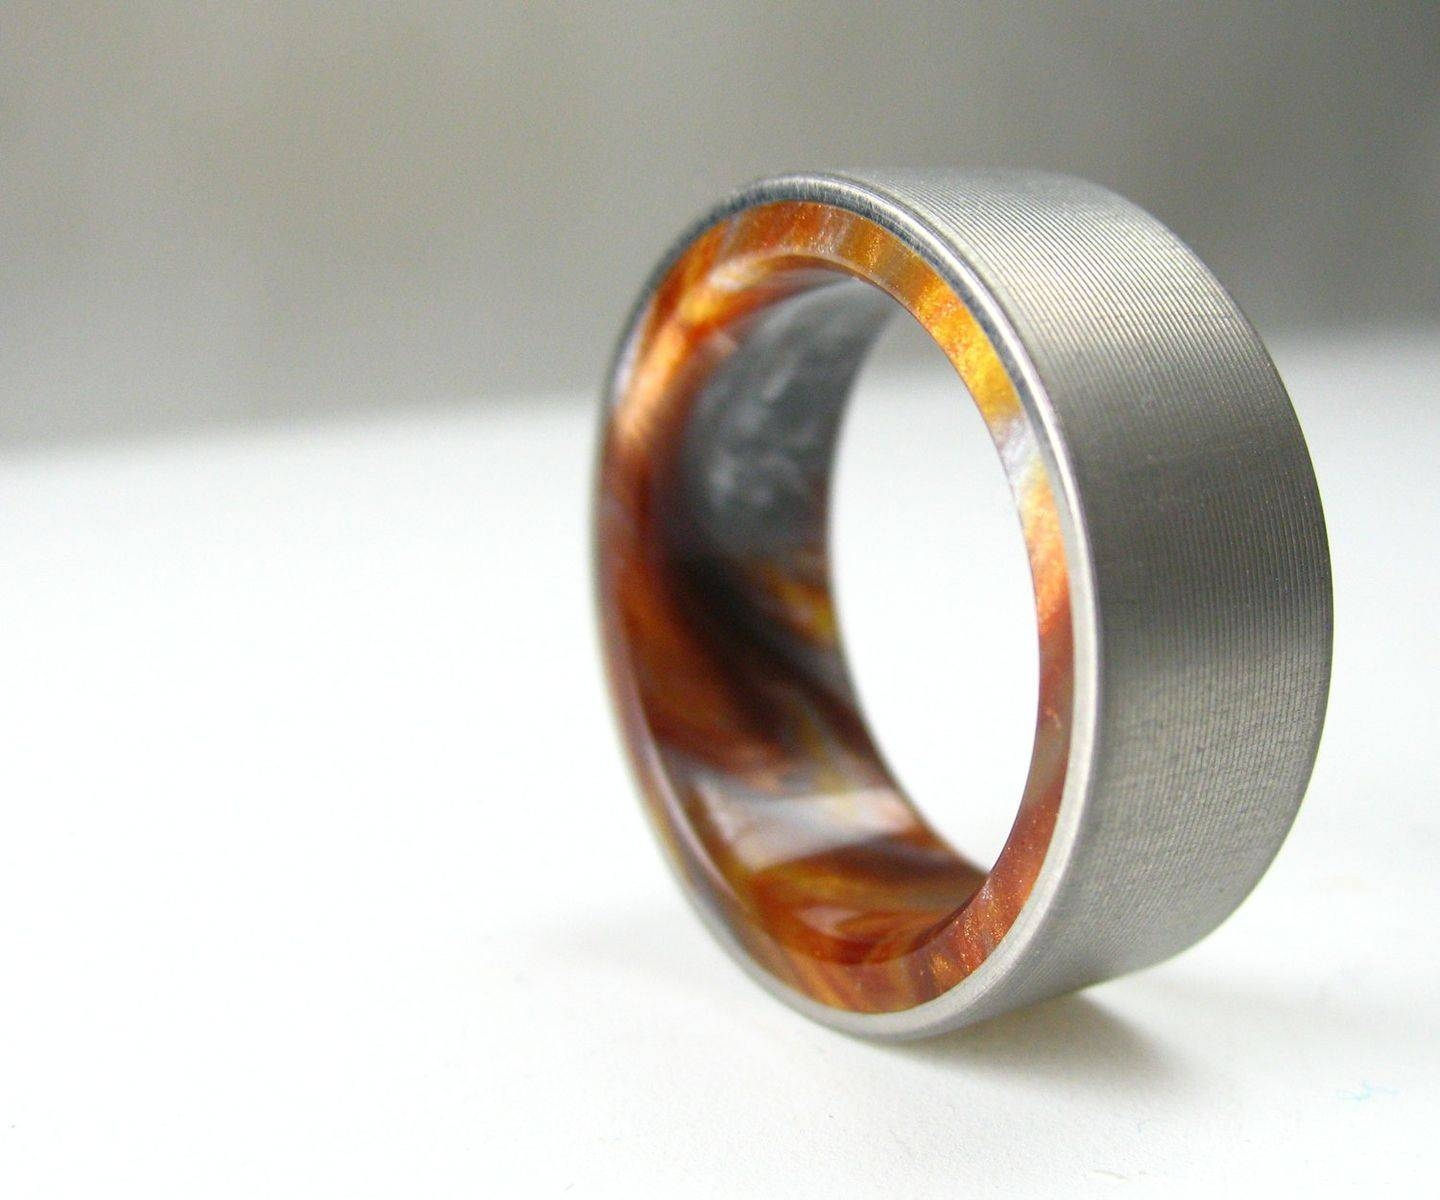 Modern Wedding Bands | Contemporary Wedding Rings | Custommade Intended For Mens Bullet Wedding Bands (View 8 of 15)